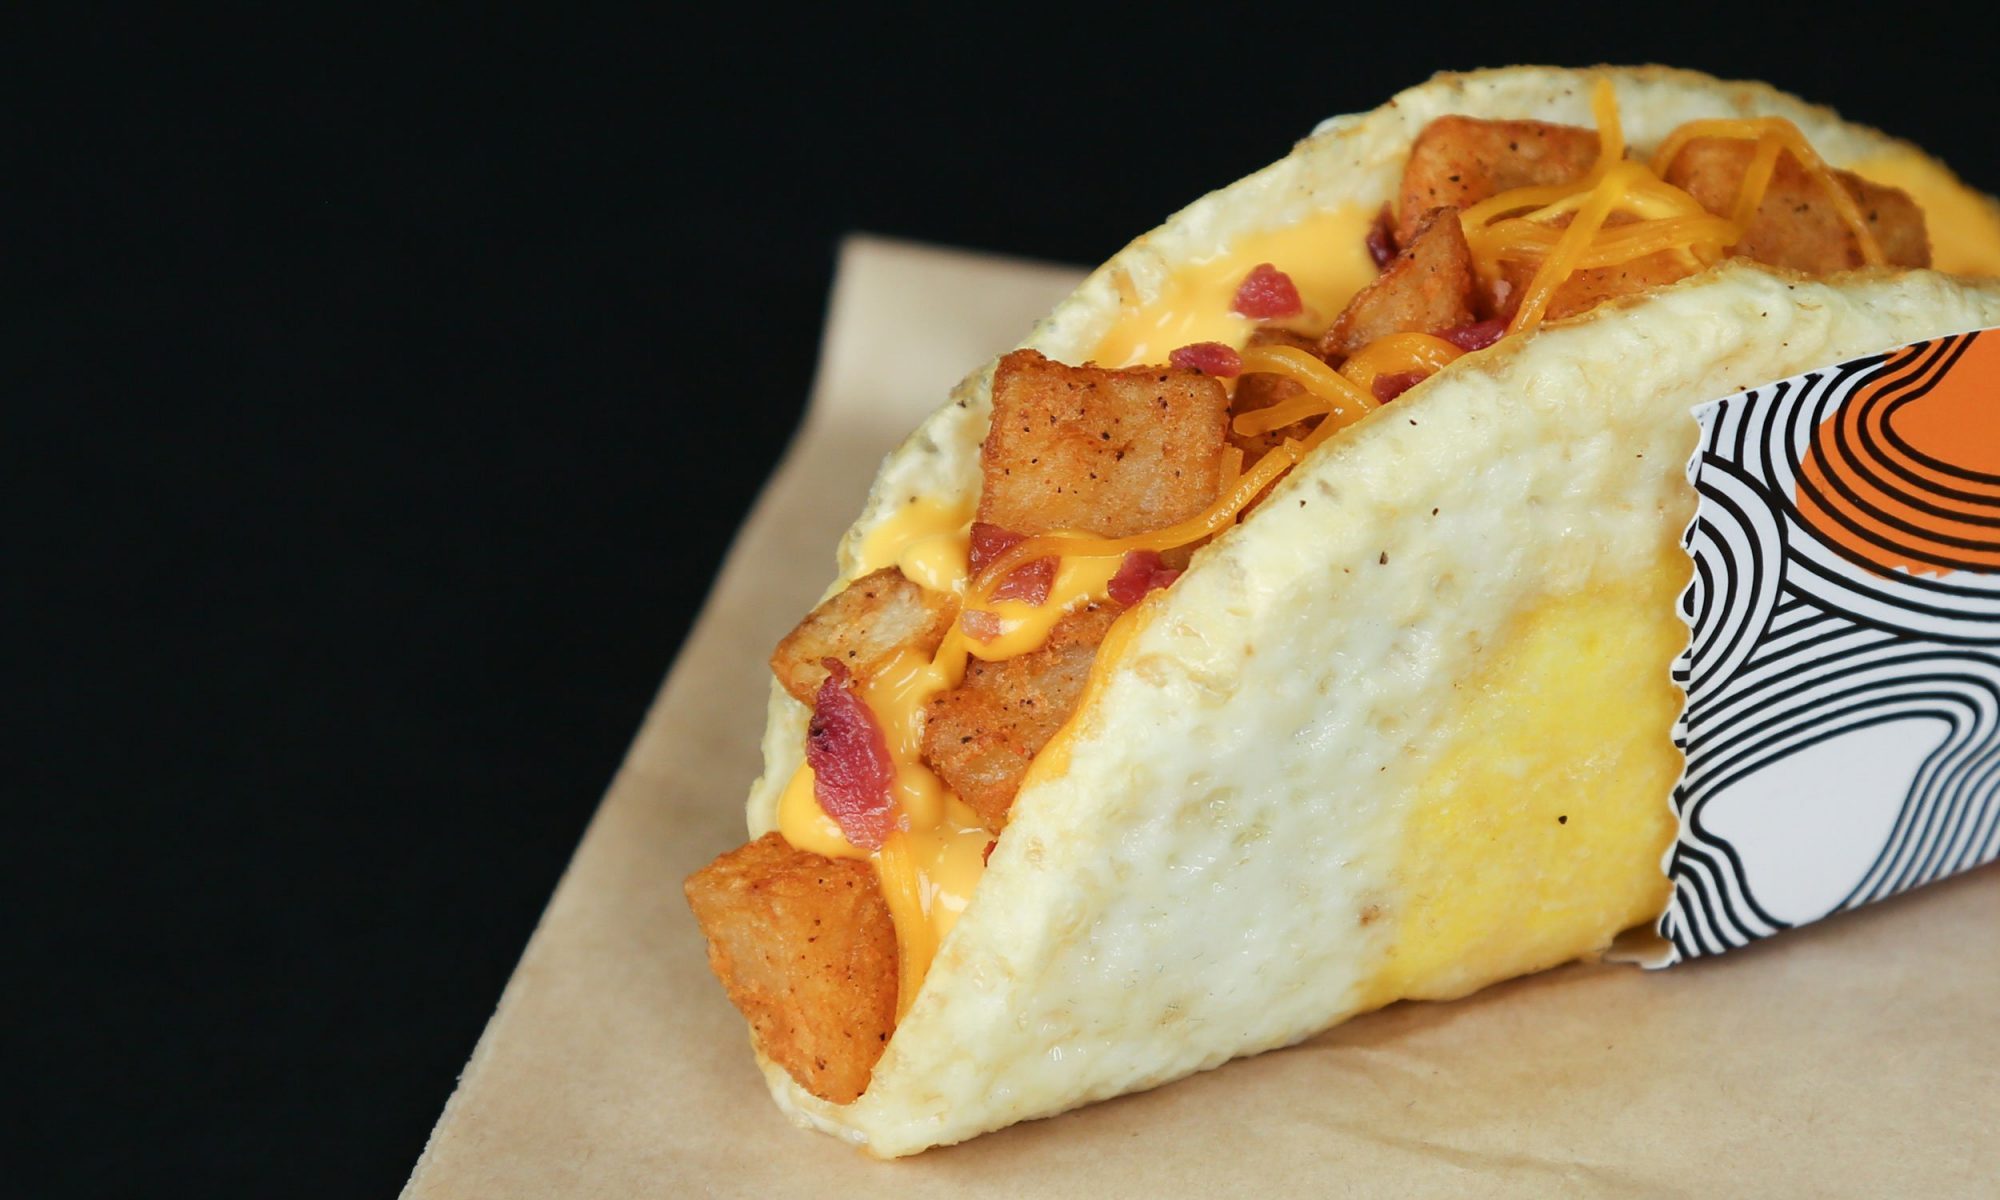 Taco Bell Breakfast Taco with Fried Egg as Shell, Filled with Potatoes and Cheese